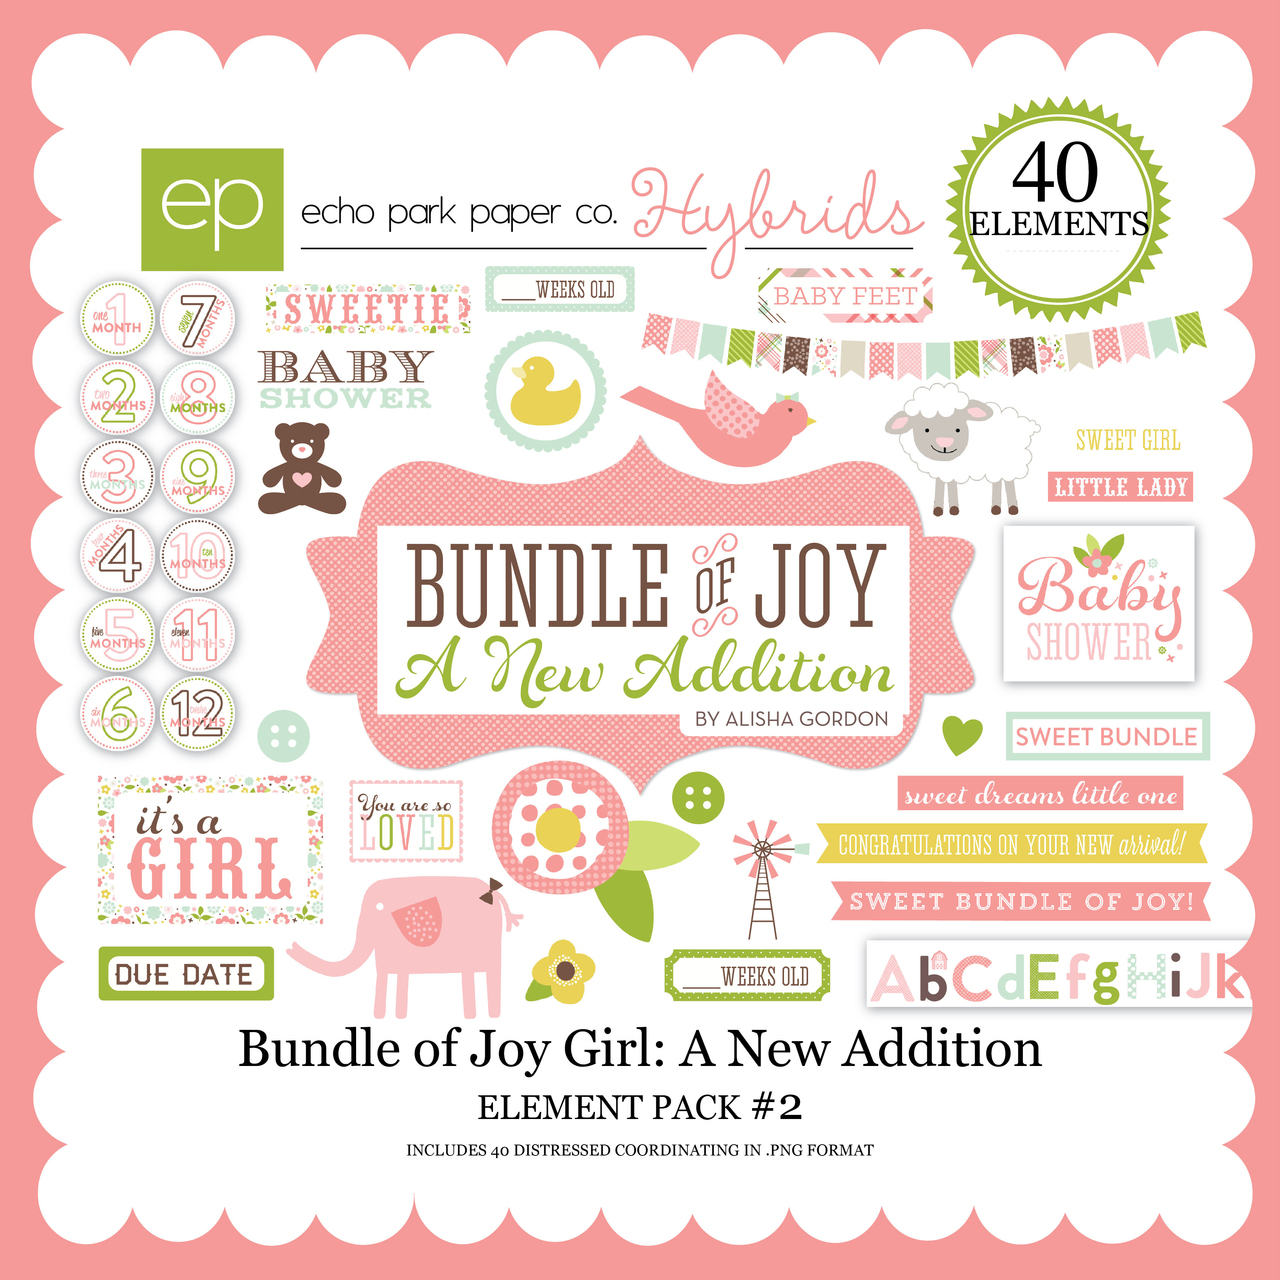 Bundle of Joy Girl: A New Addition Element Pack #2